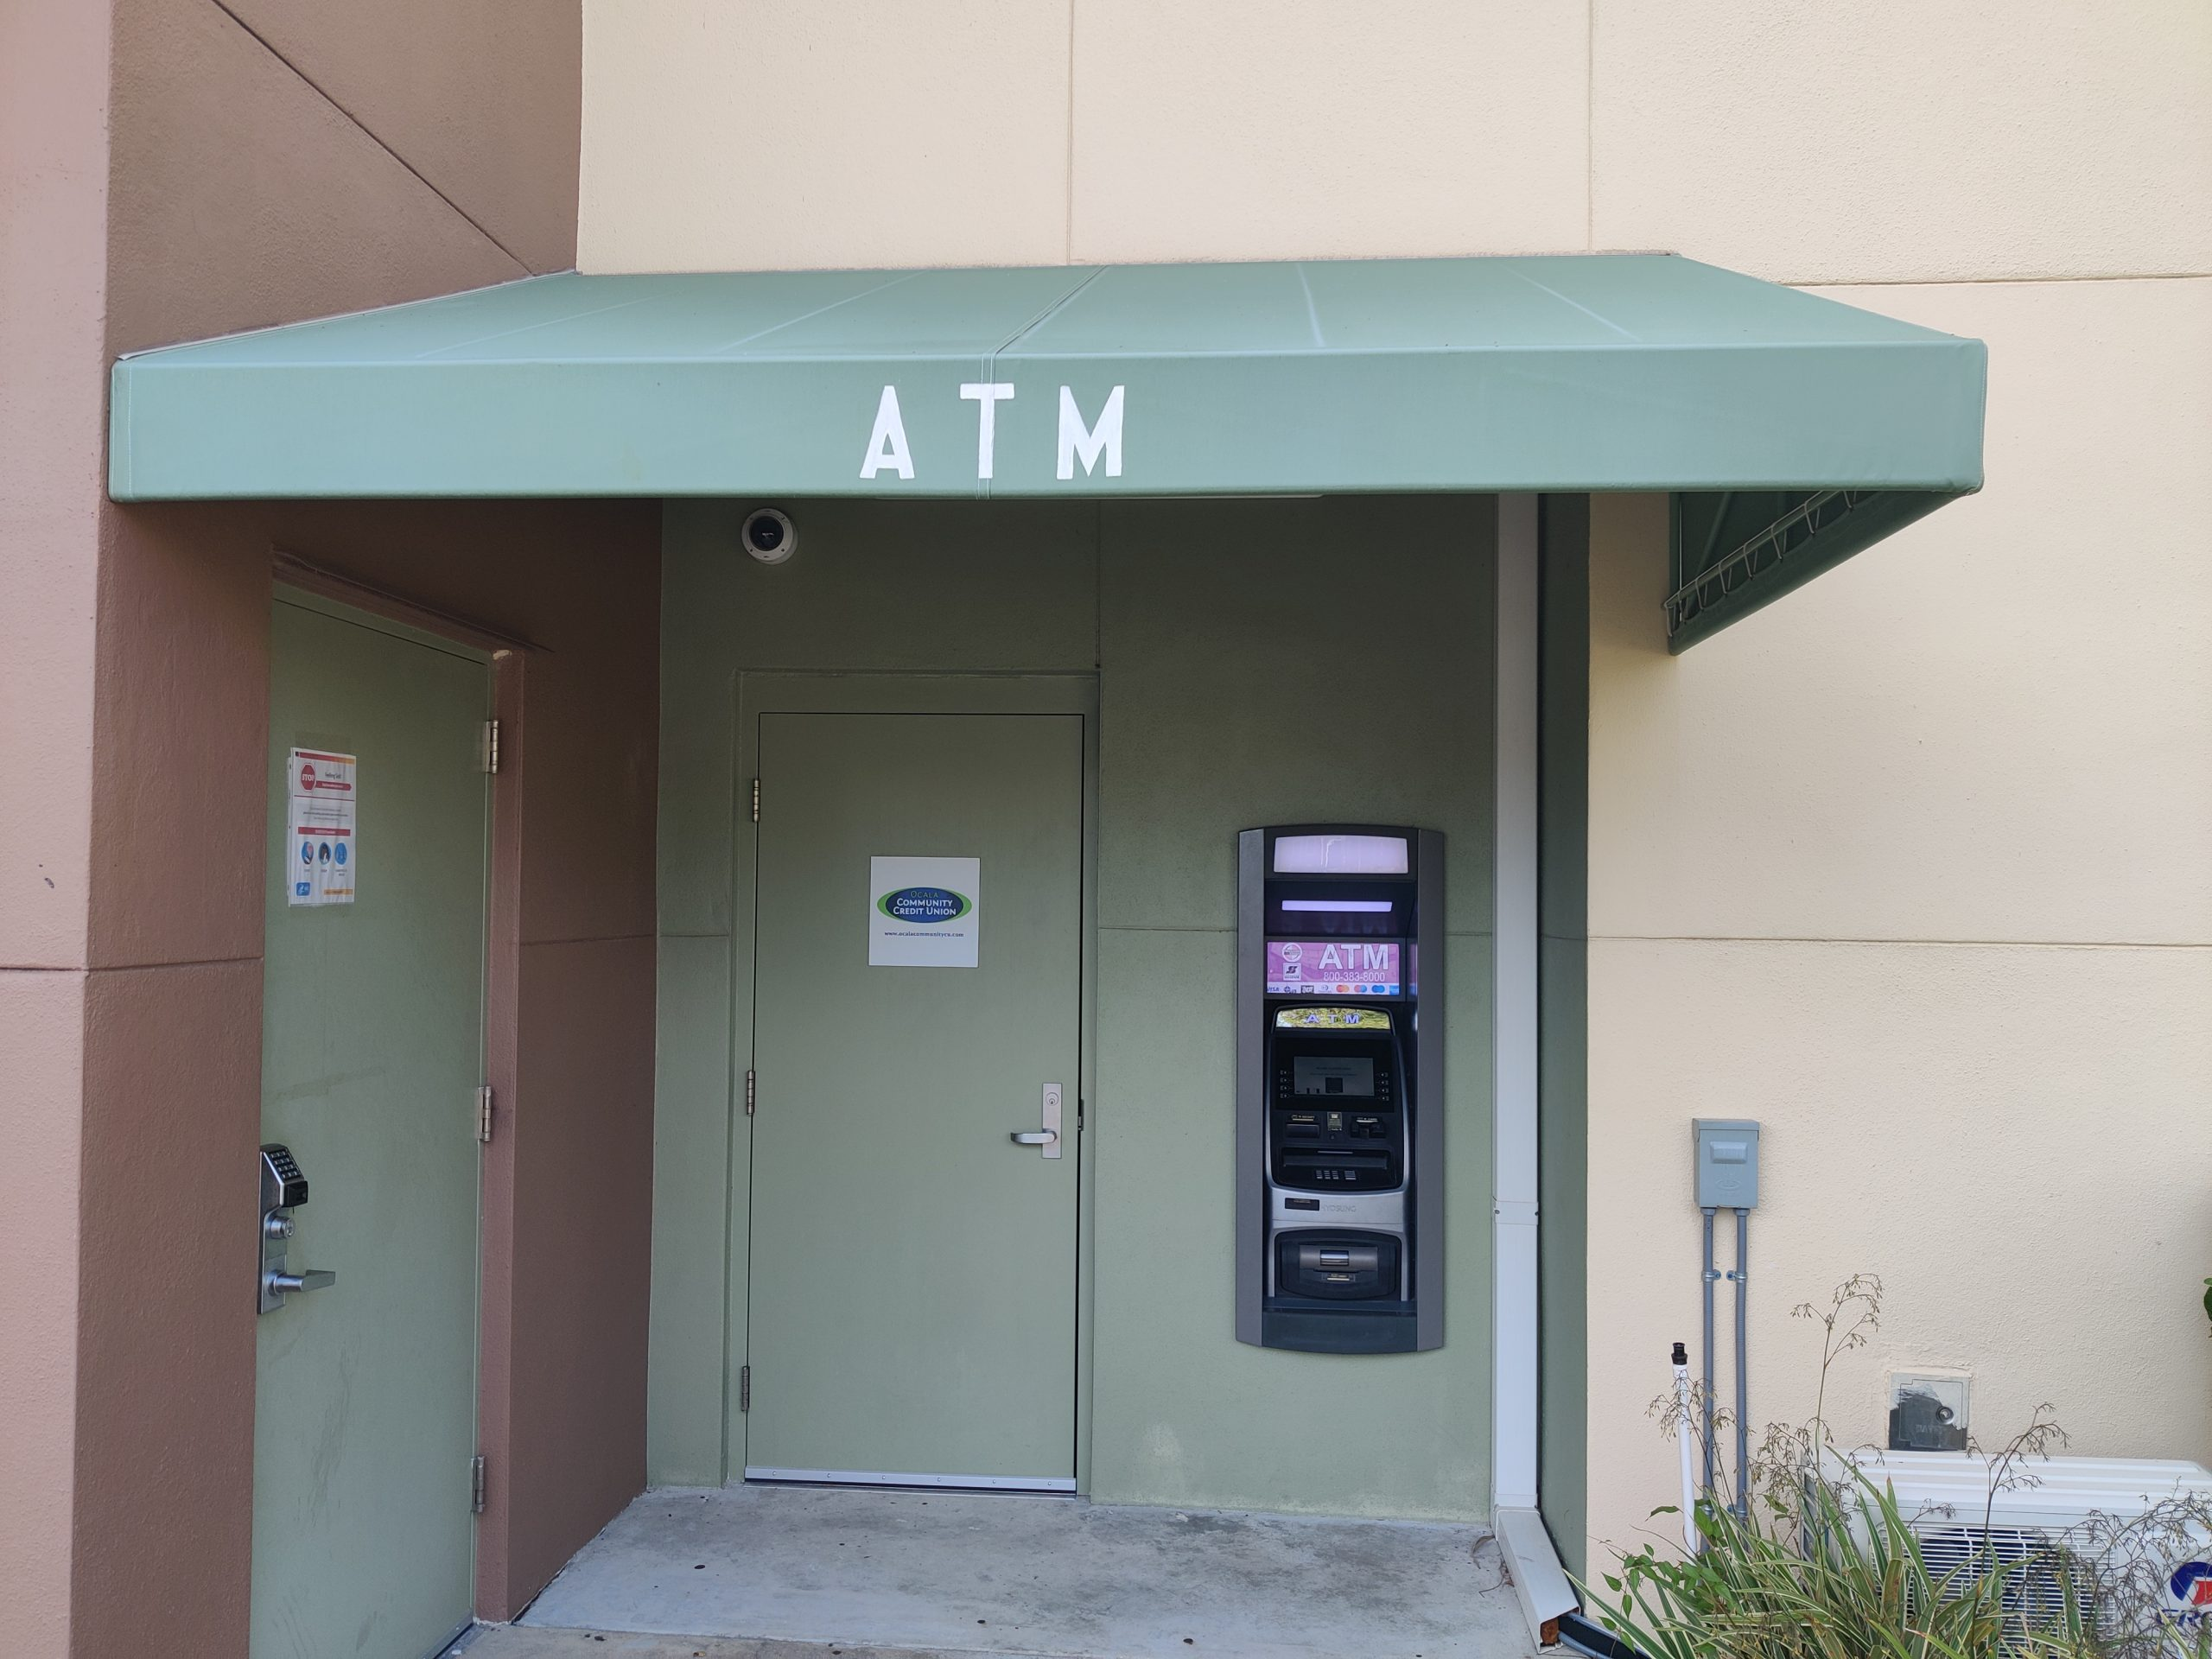 ATM Awning @ Citizen's Center - After Cleaning